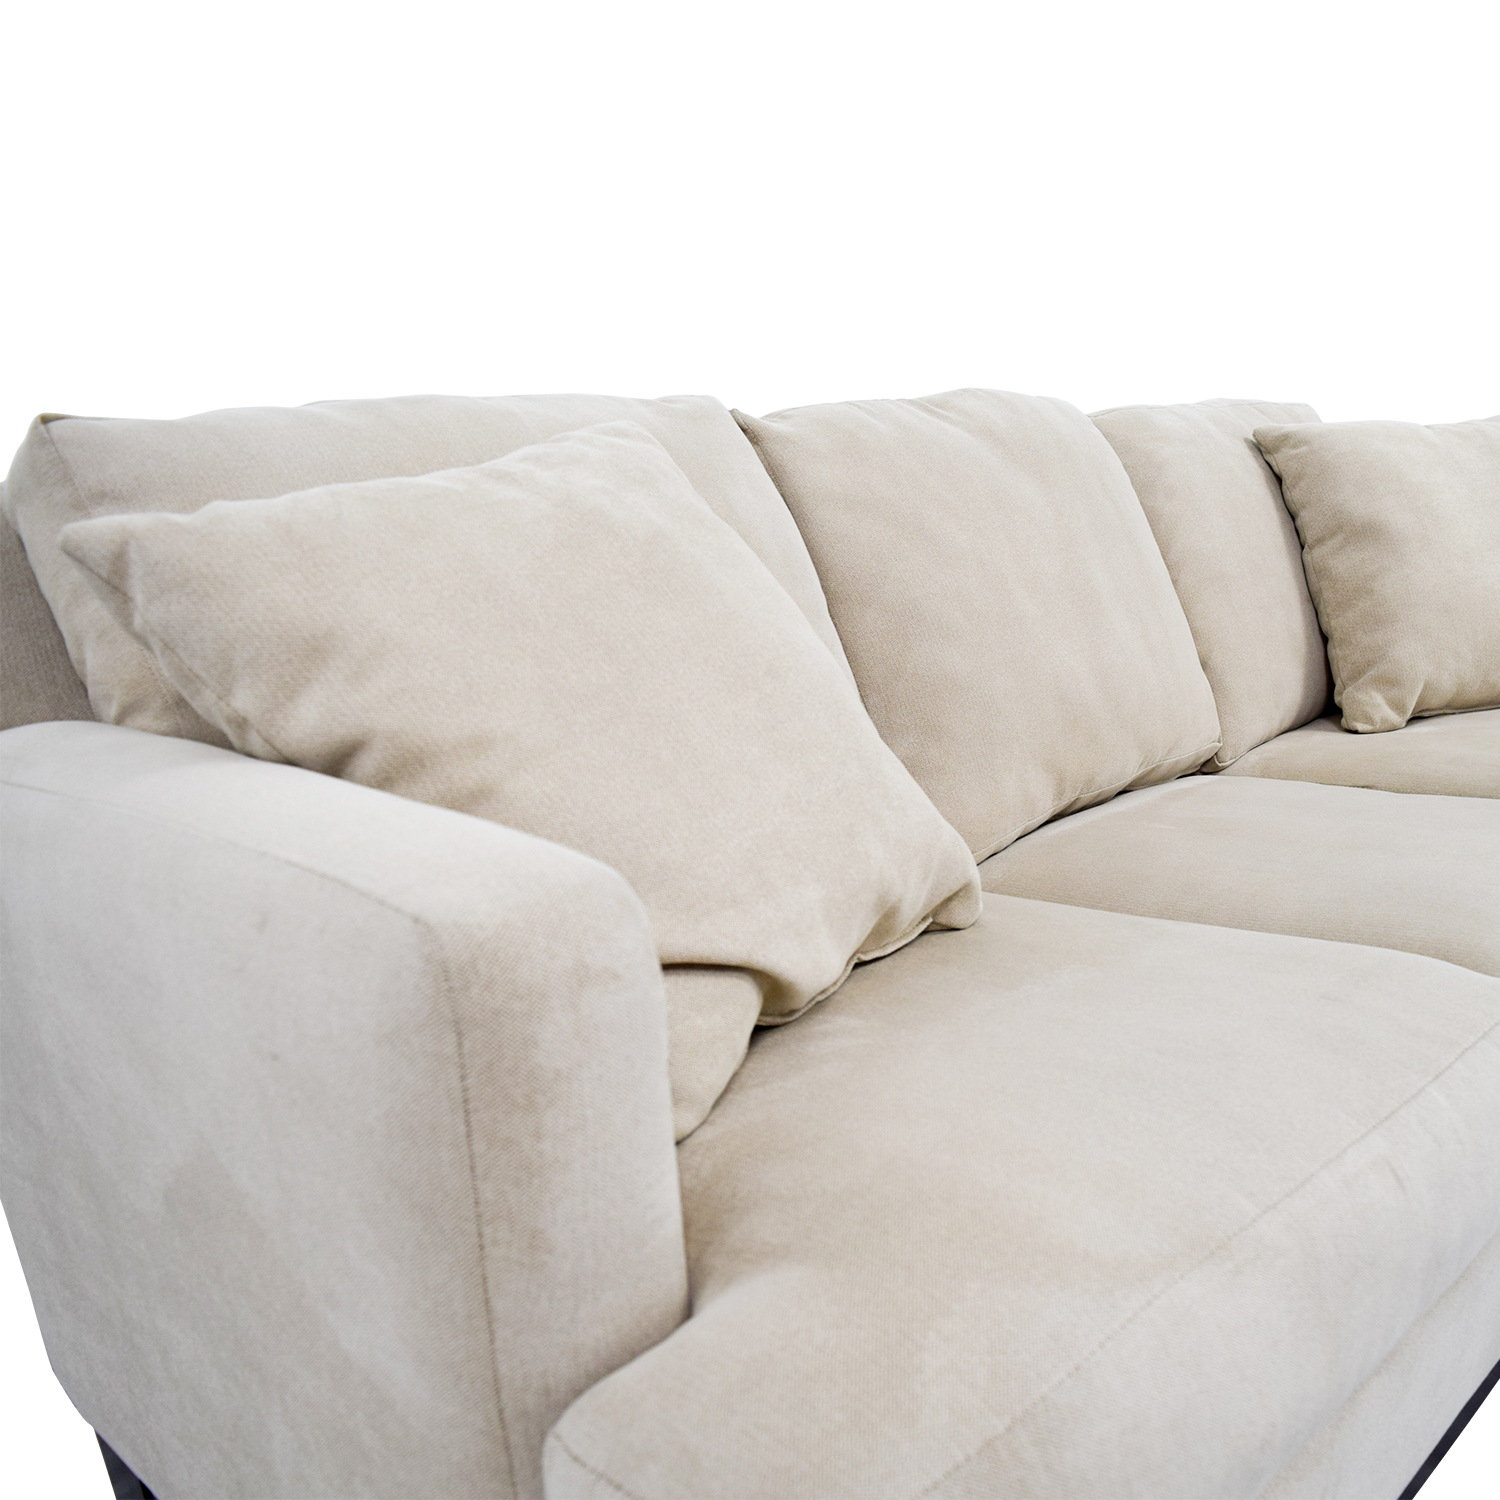 87 off raymour flanigan raymour flanigan beige for Couch beige